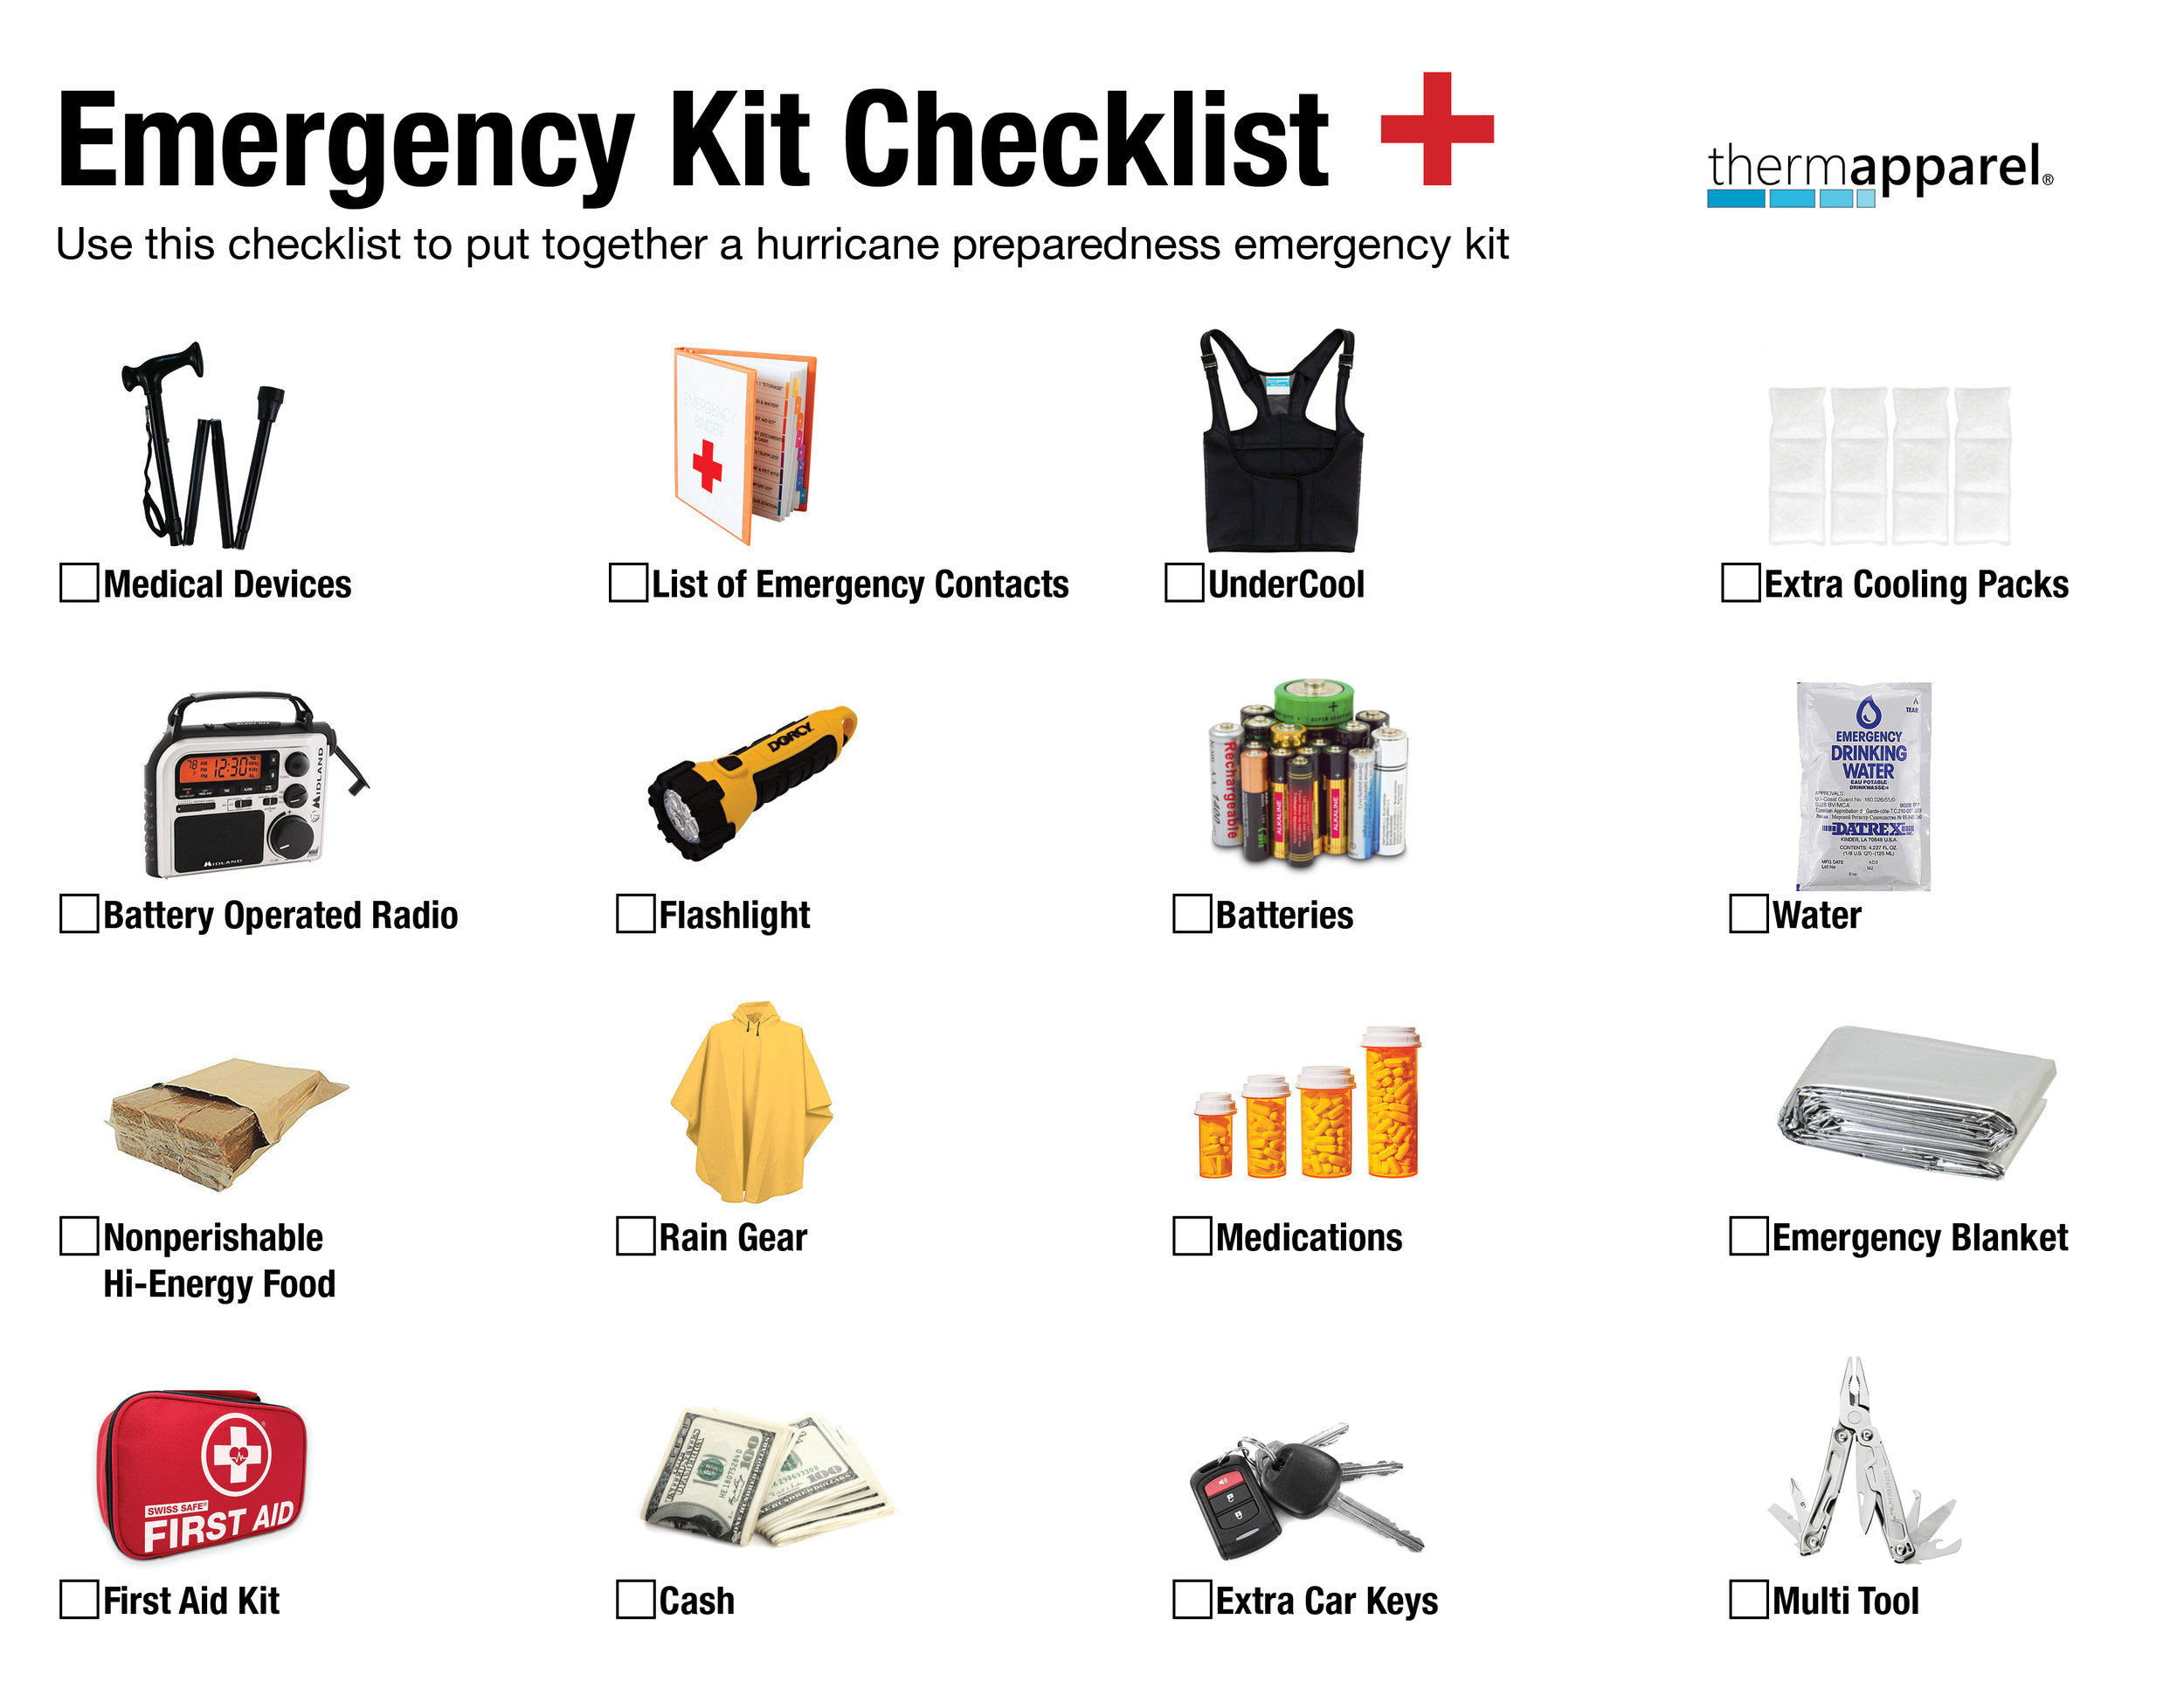 ThermApparel-Emergency-Checklist-for-MS-multiple-sclerosis.jpg